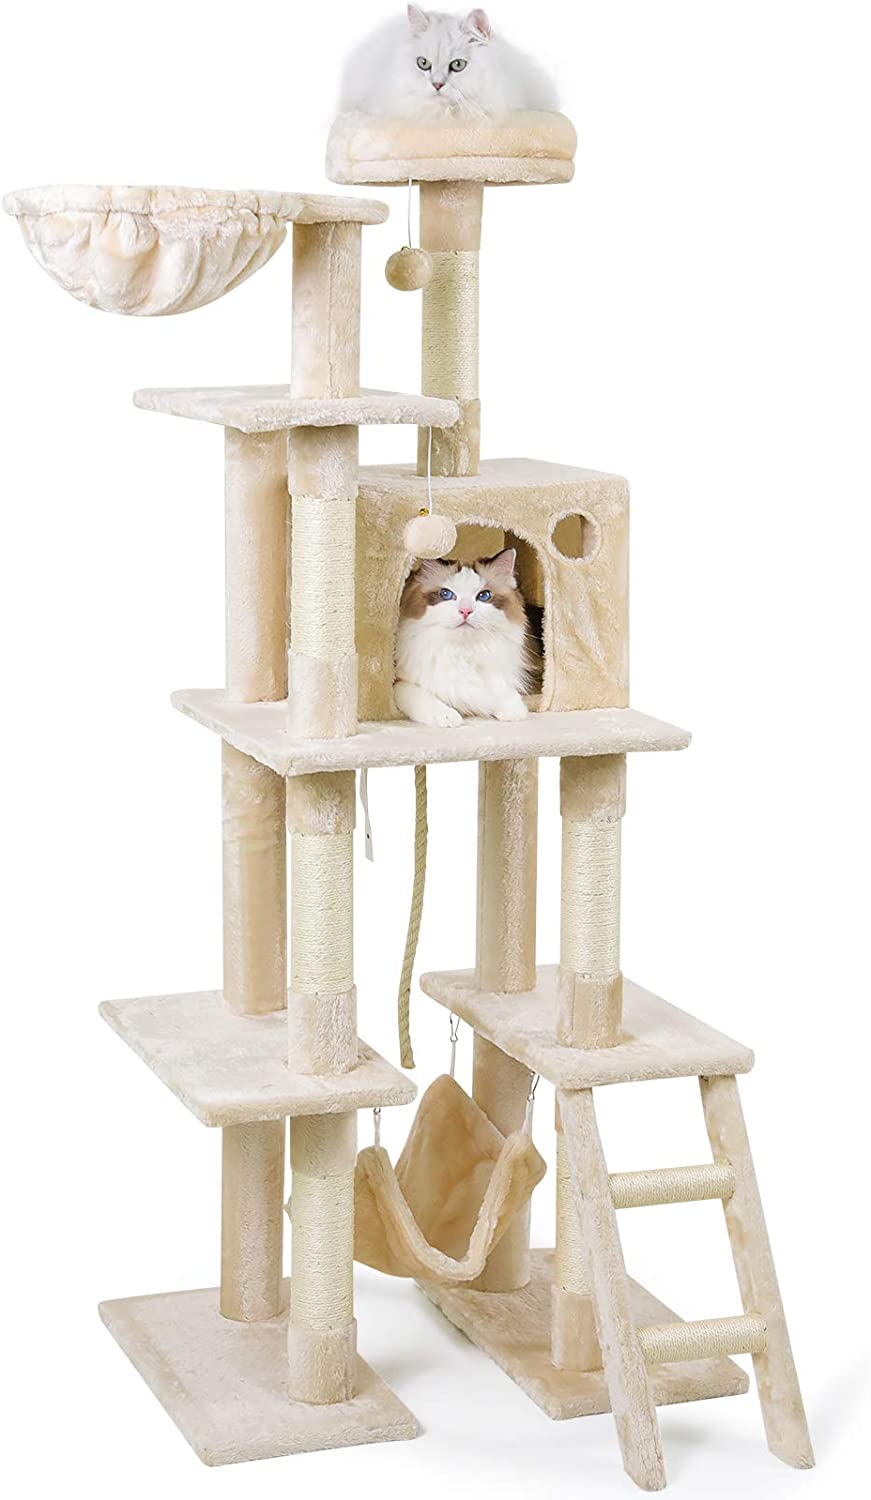 """rabbitgoo Cat Tree Cat Tower 61"""" for Indoor Cats, Multi-Level Cat Condo with Hammock & Scratching Posts for Kittens, Tall Cat Climbing Stand with Plush Perch & Toys for Play Rest"""